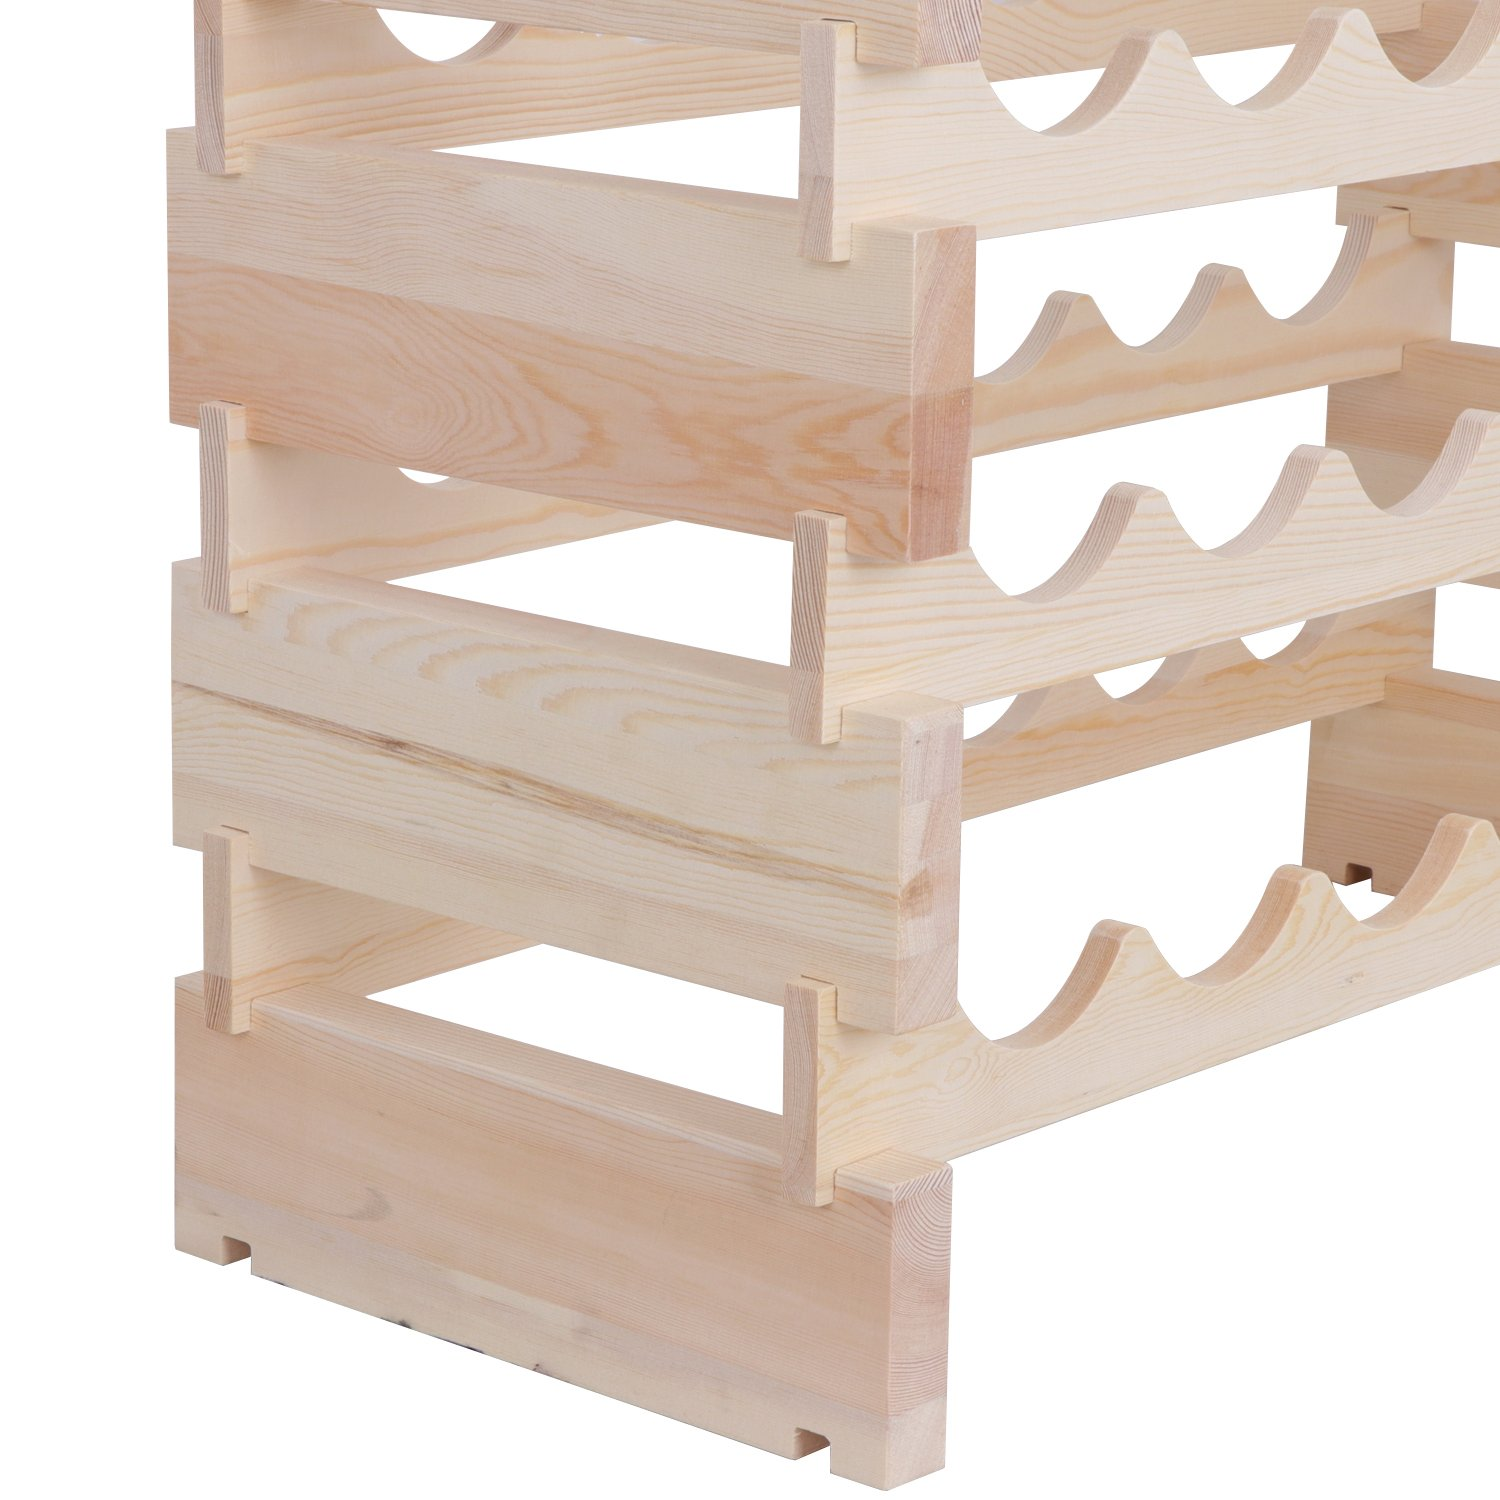 Smartxchoices 36 Bottle Stackable Modular Wine Rack Small Wine Storage Rack Free Standing Solid Natural Wood Wine Holder Display Shelves, Wobble-Free (Six-Tier, 36 Bottle Capacity) by Smartxchoices (Image #4)